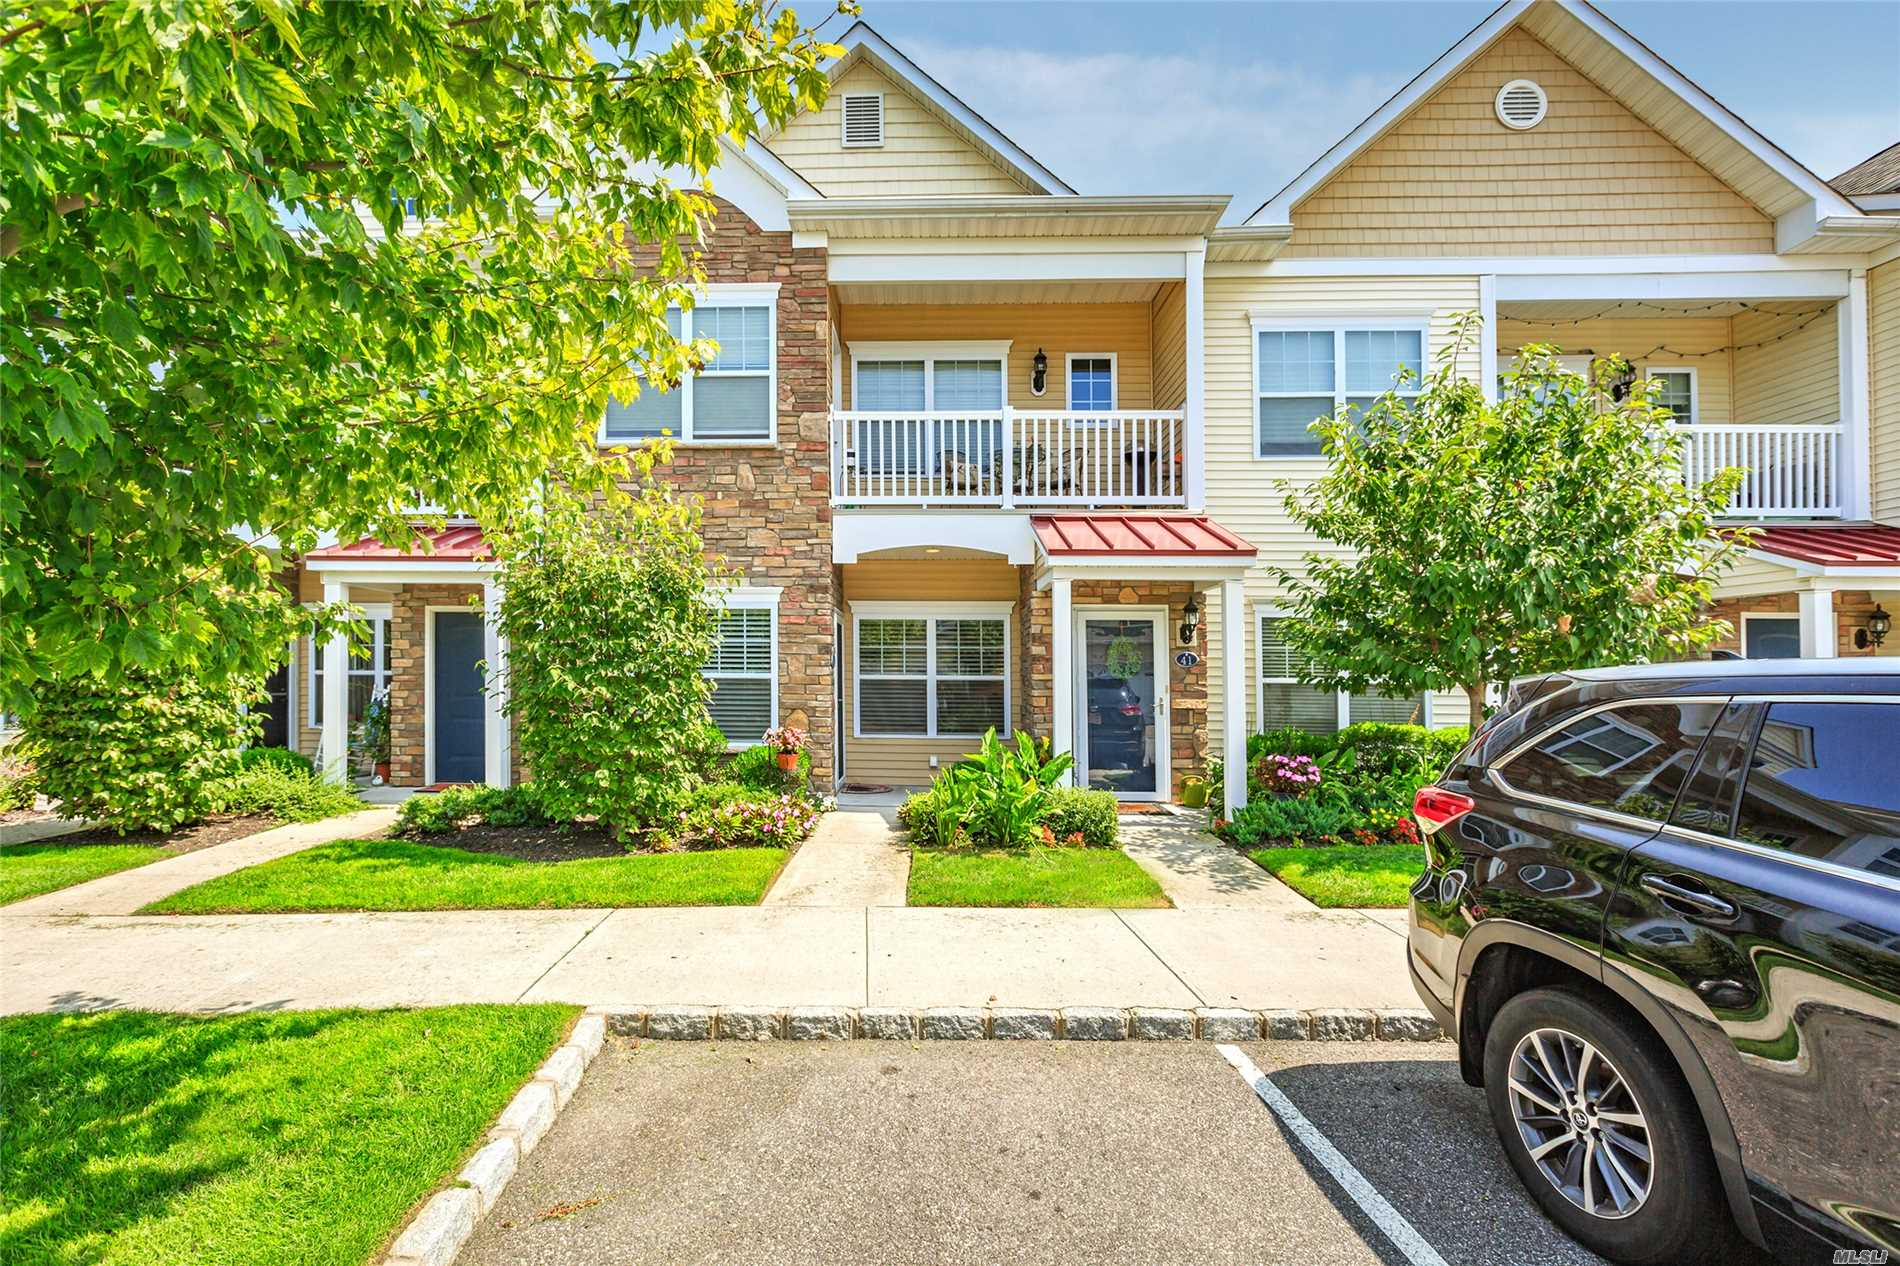 This Beautiful Condo In The Village Includes- New Kitchen, Shower In Mstr Bth, Washer, Microwave, Carpets, Toilets, Faucets, Storm Doors, Ceiling Fans & More. Walk To Train, Ferry, Pool, Tennis, Village Theater & Restaurants.